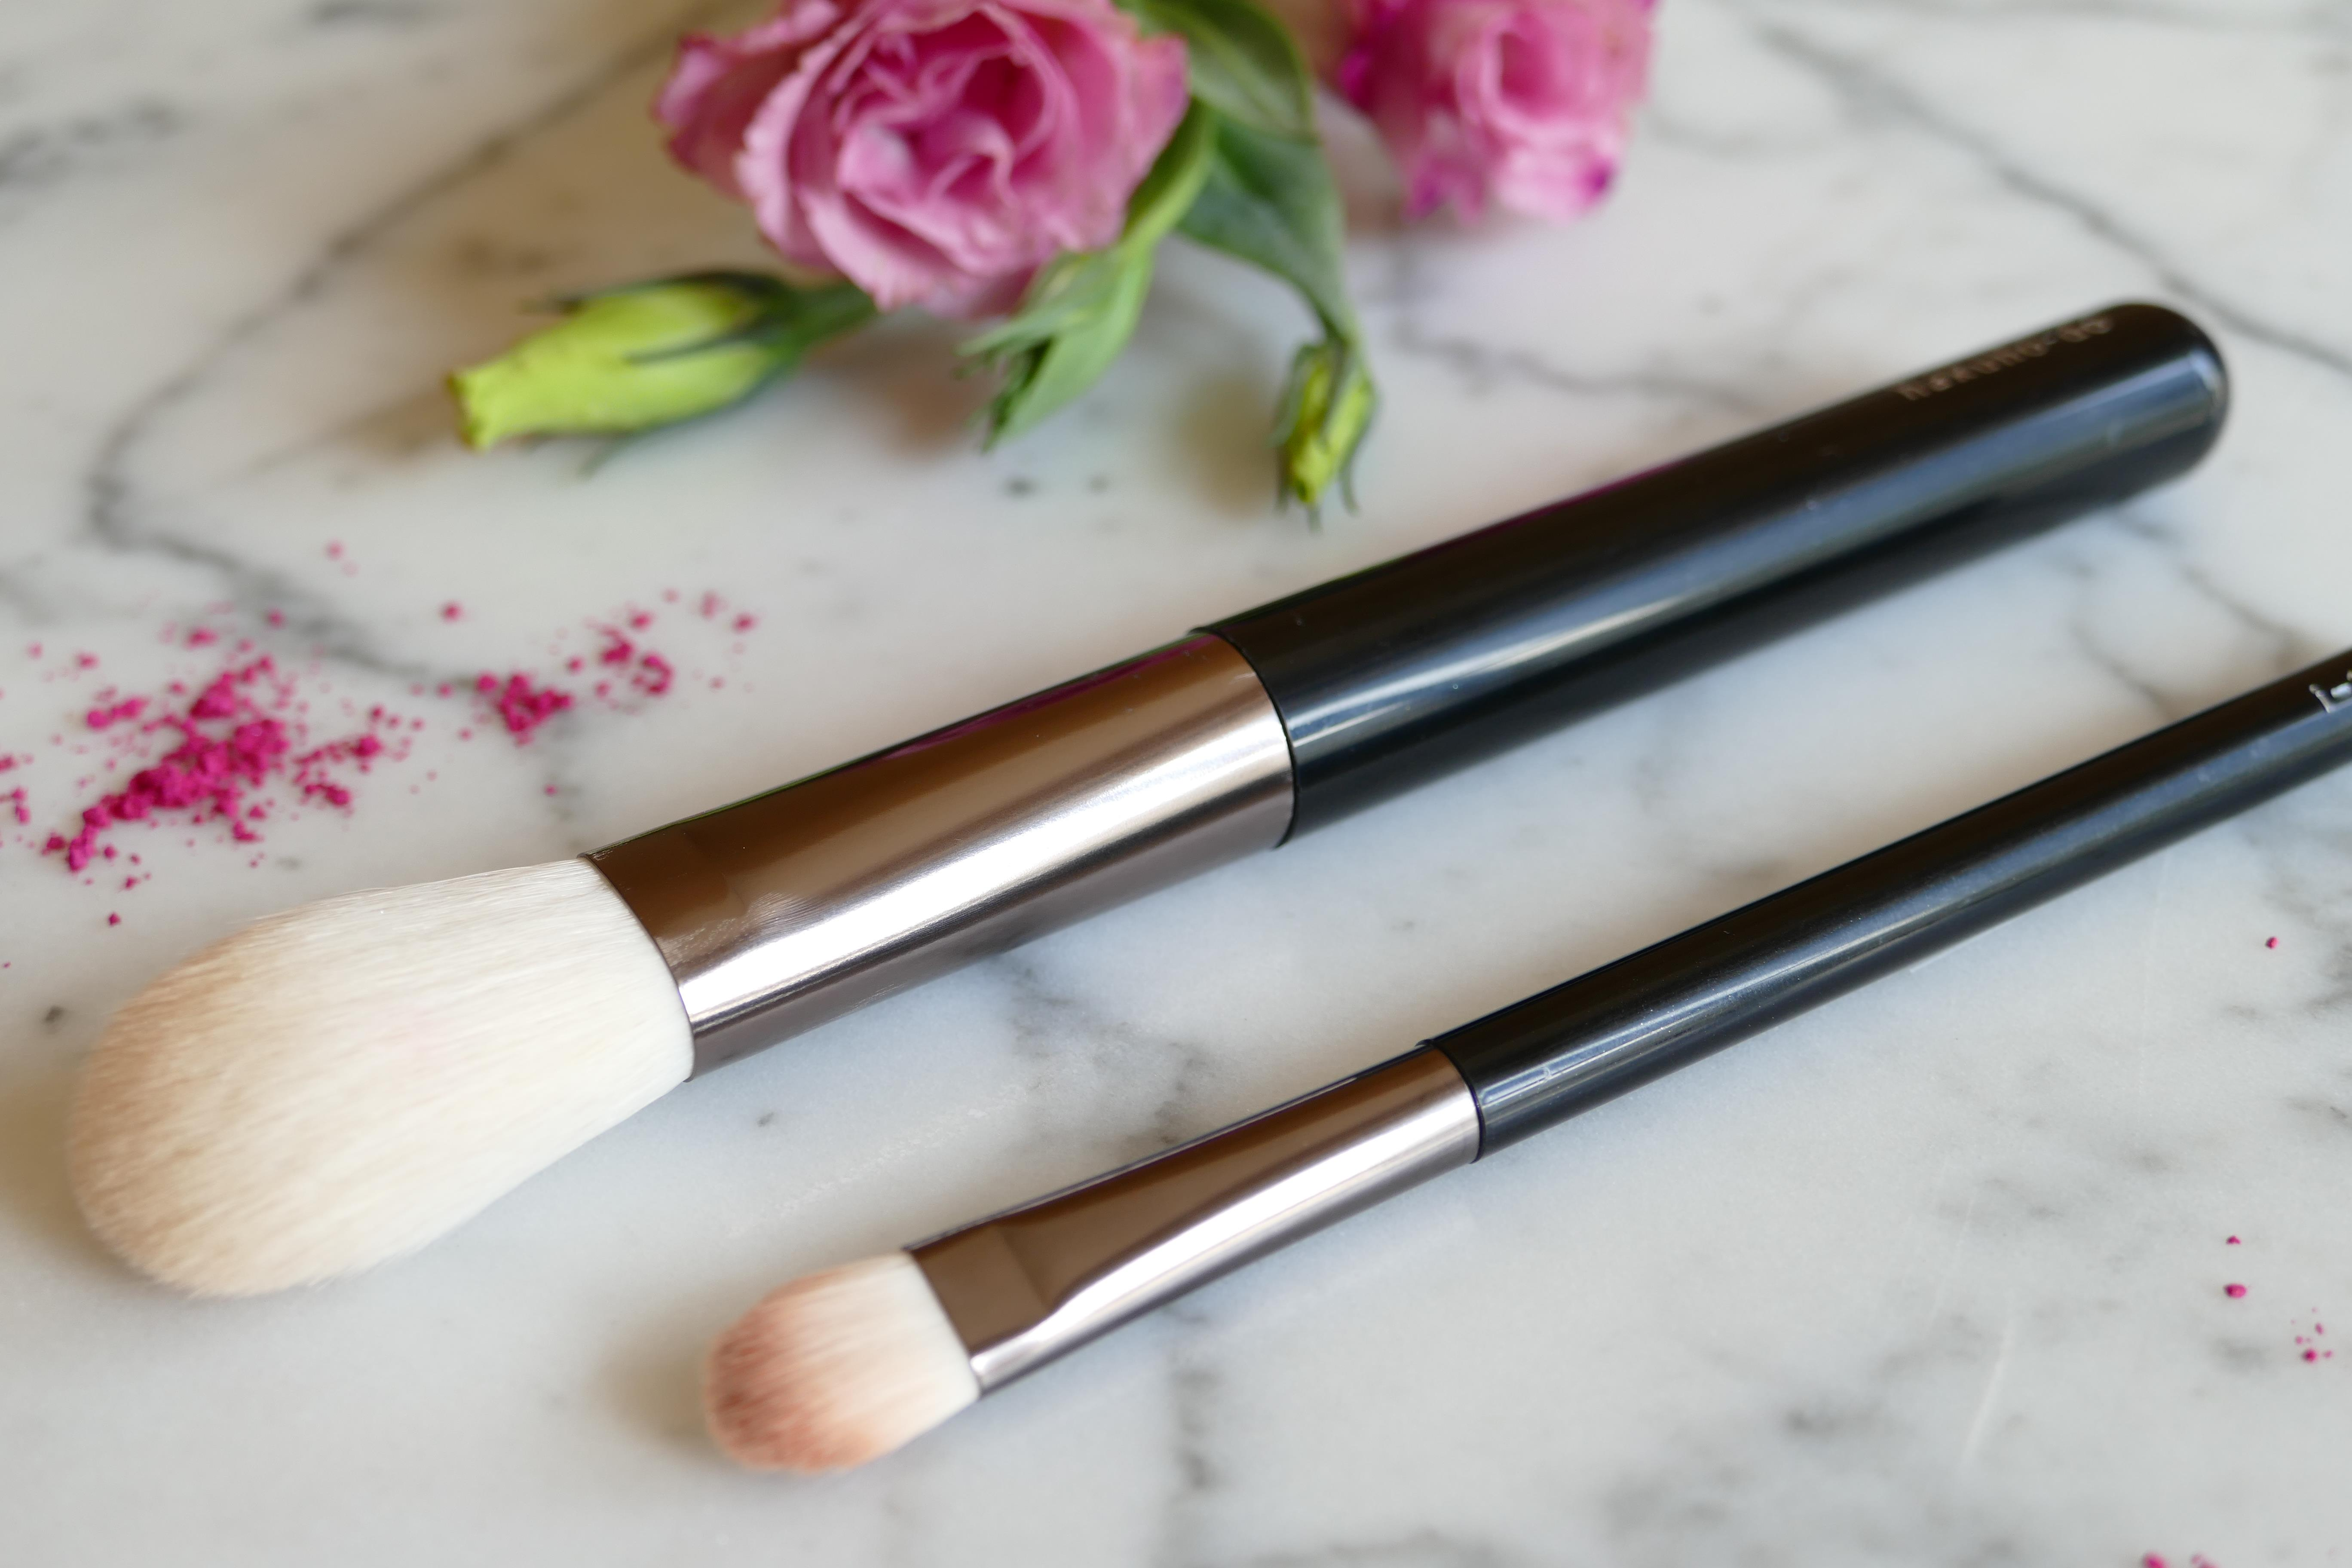 Two weeks, two brushes: Hakuhodo i-series